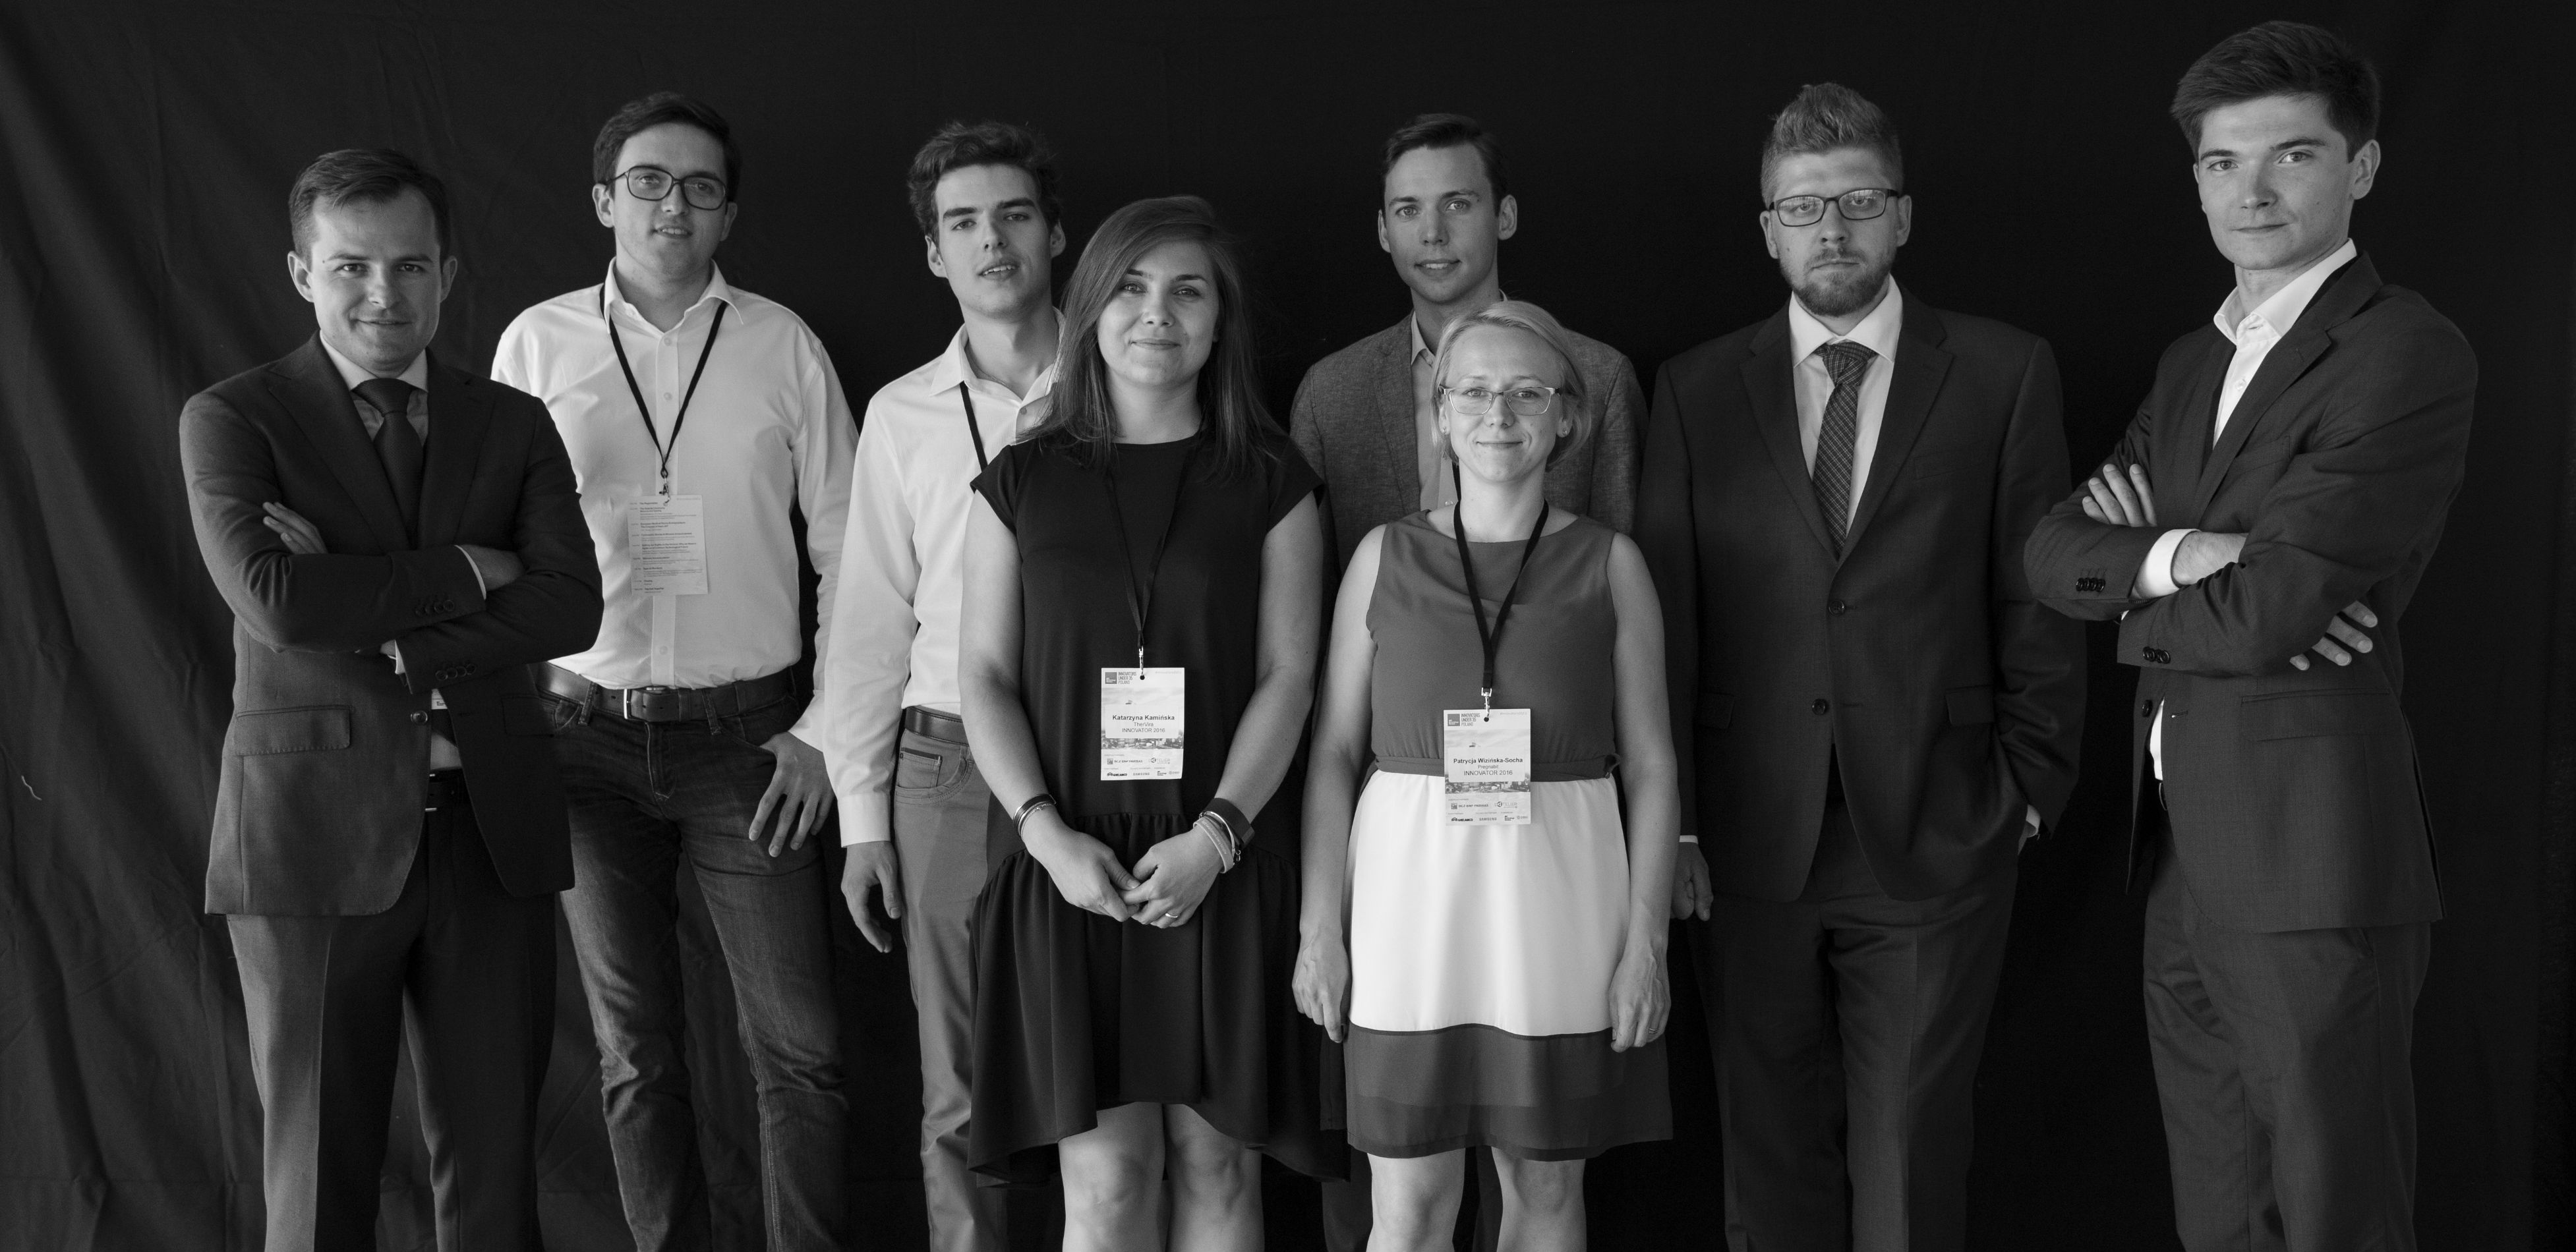 The Brightest Polish Talents in Science & Technology 2016